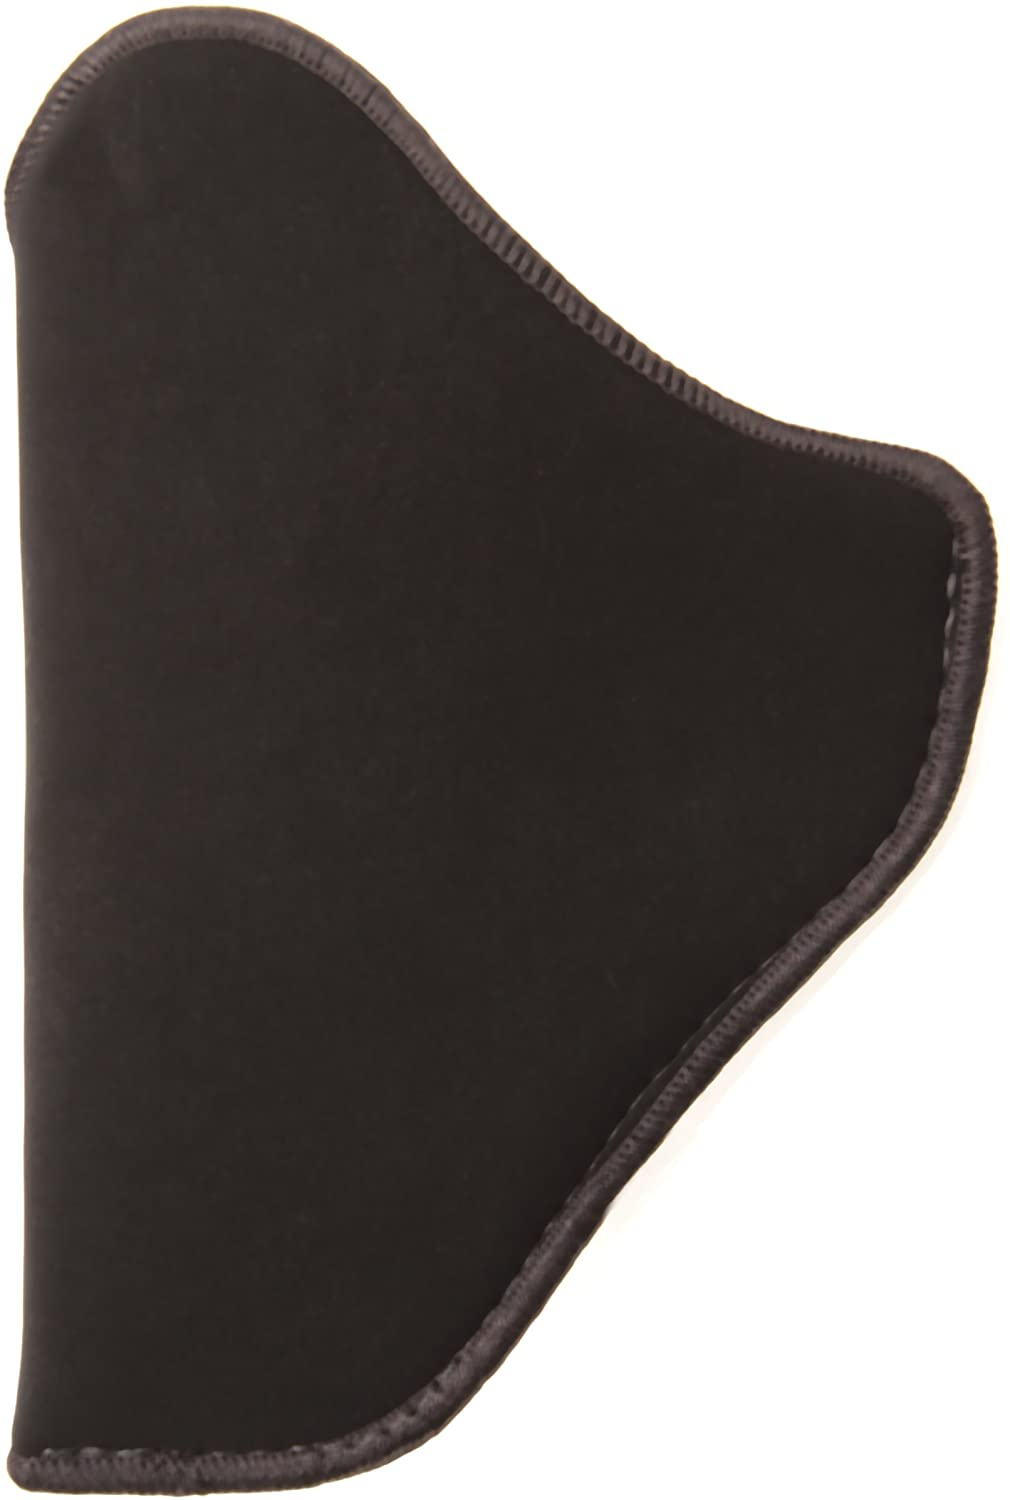 BLACKHAWK Inside-the-Pants Holster, Size 01, Right Hand, (3-4